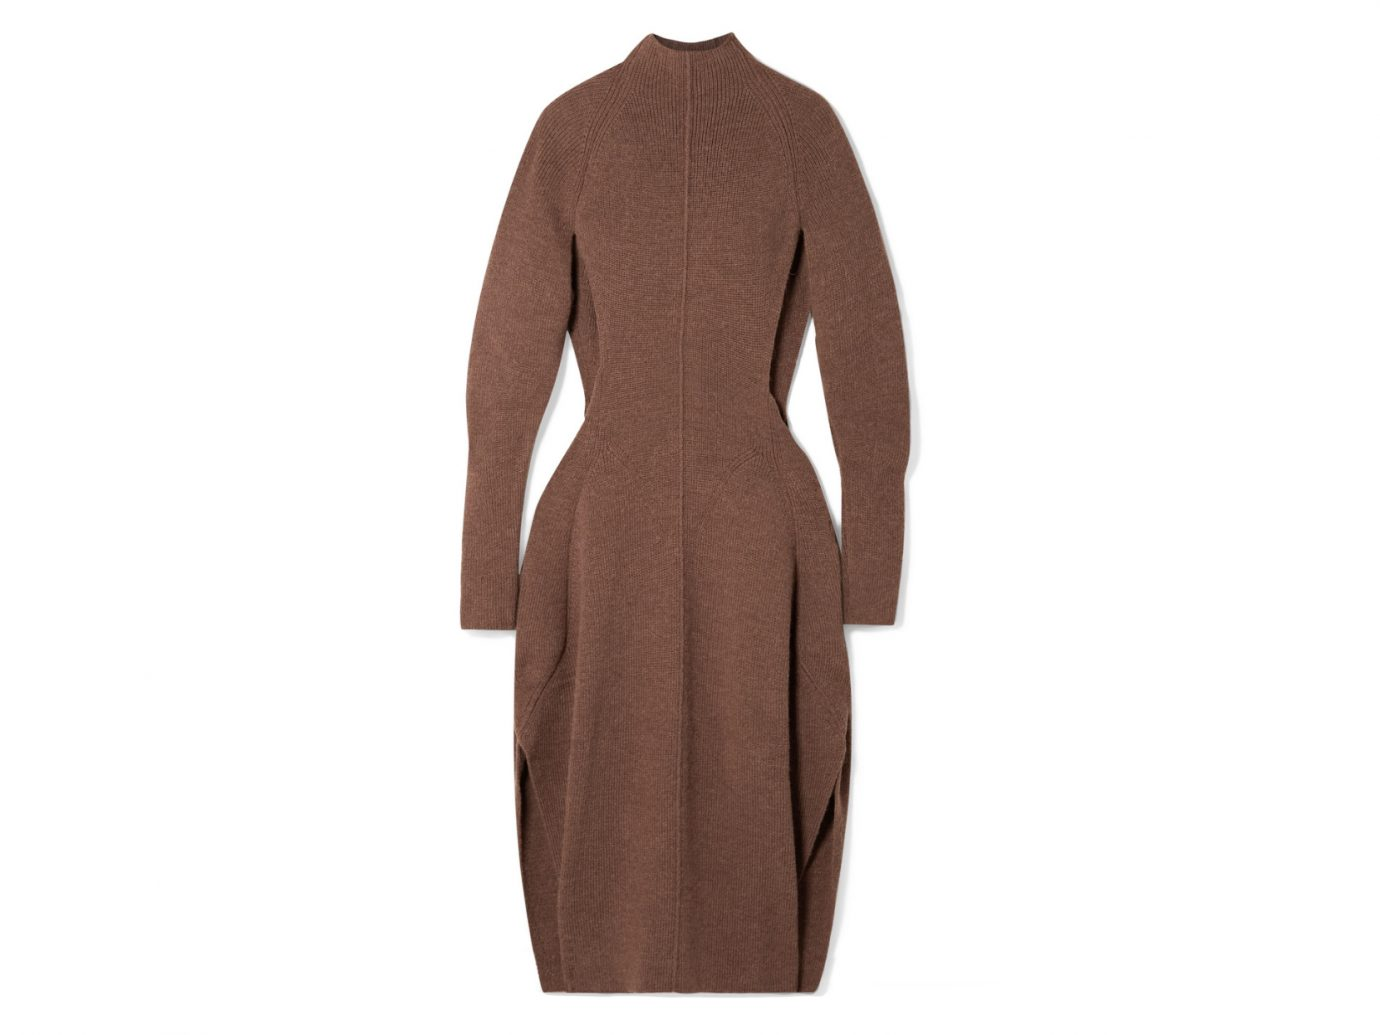 CHLOÉ Cutout Knitted Midi Dress